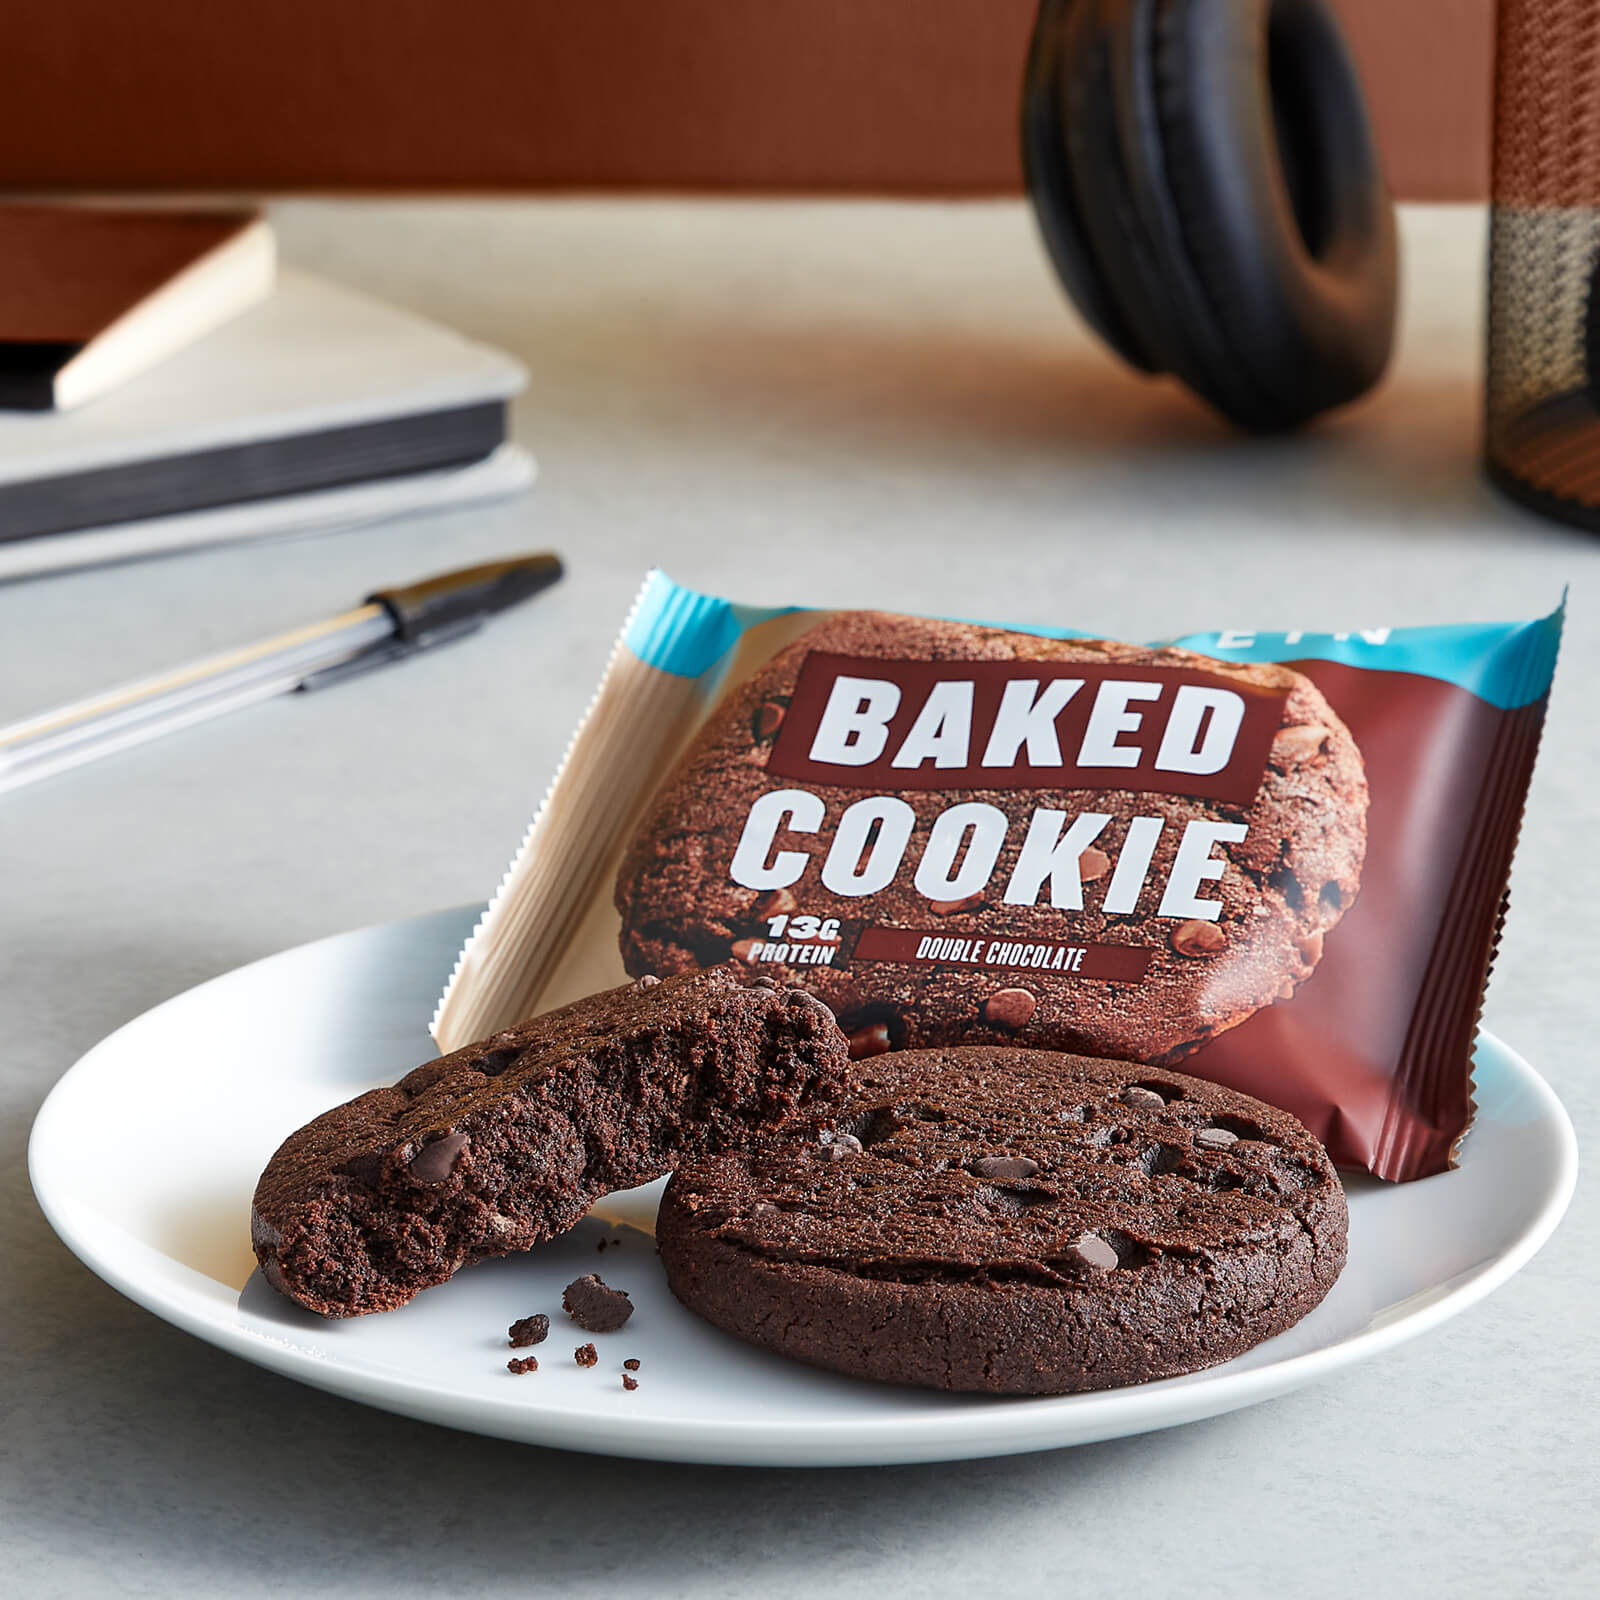 Myprotein Baked Protein Cookie, 13g Protein, Suitable for Vegans, Baked with Quality Ingredients, 3 - 12pcs